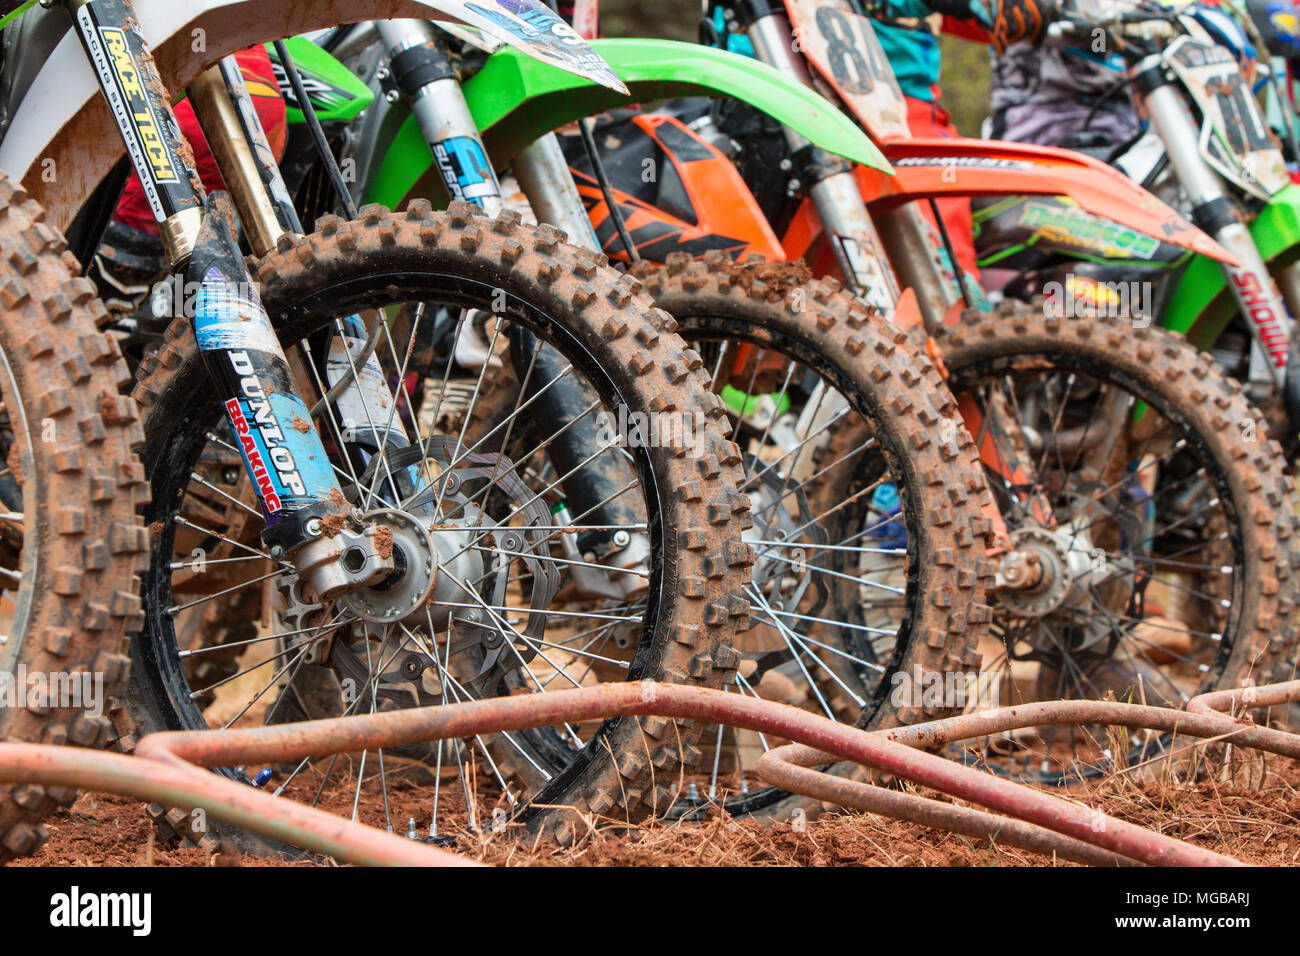 Closeup of dirt bike tires lined up at start of motocross race at the Scrubndirt Track on December 3, 2016 in Monroe, GA. - Stock Image